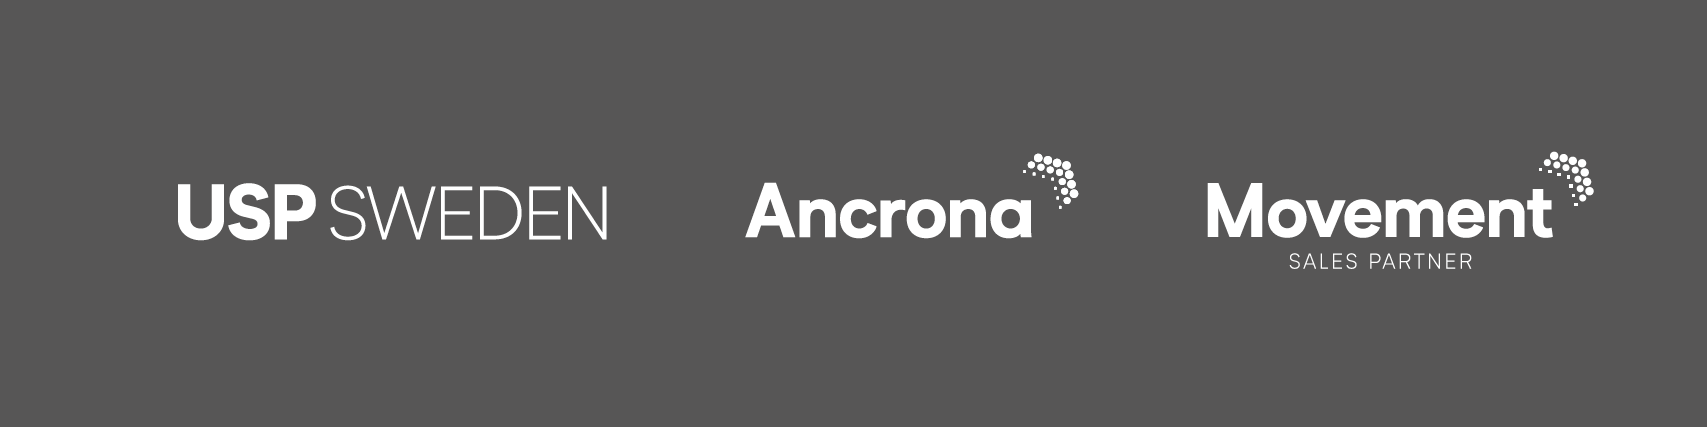 USP:ANCRONA:MOVEMENT